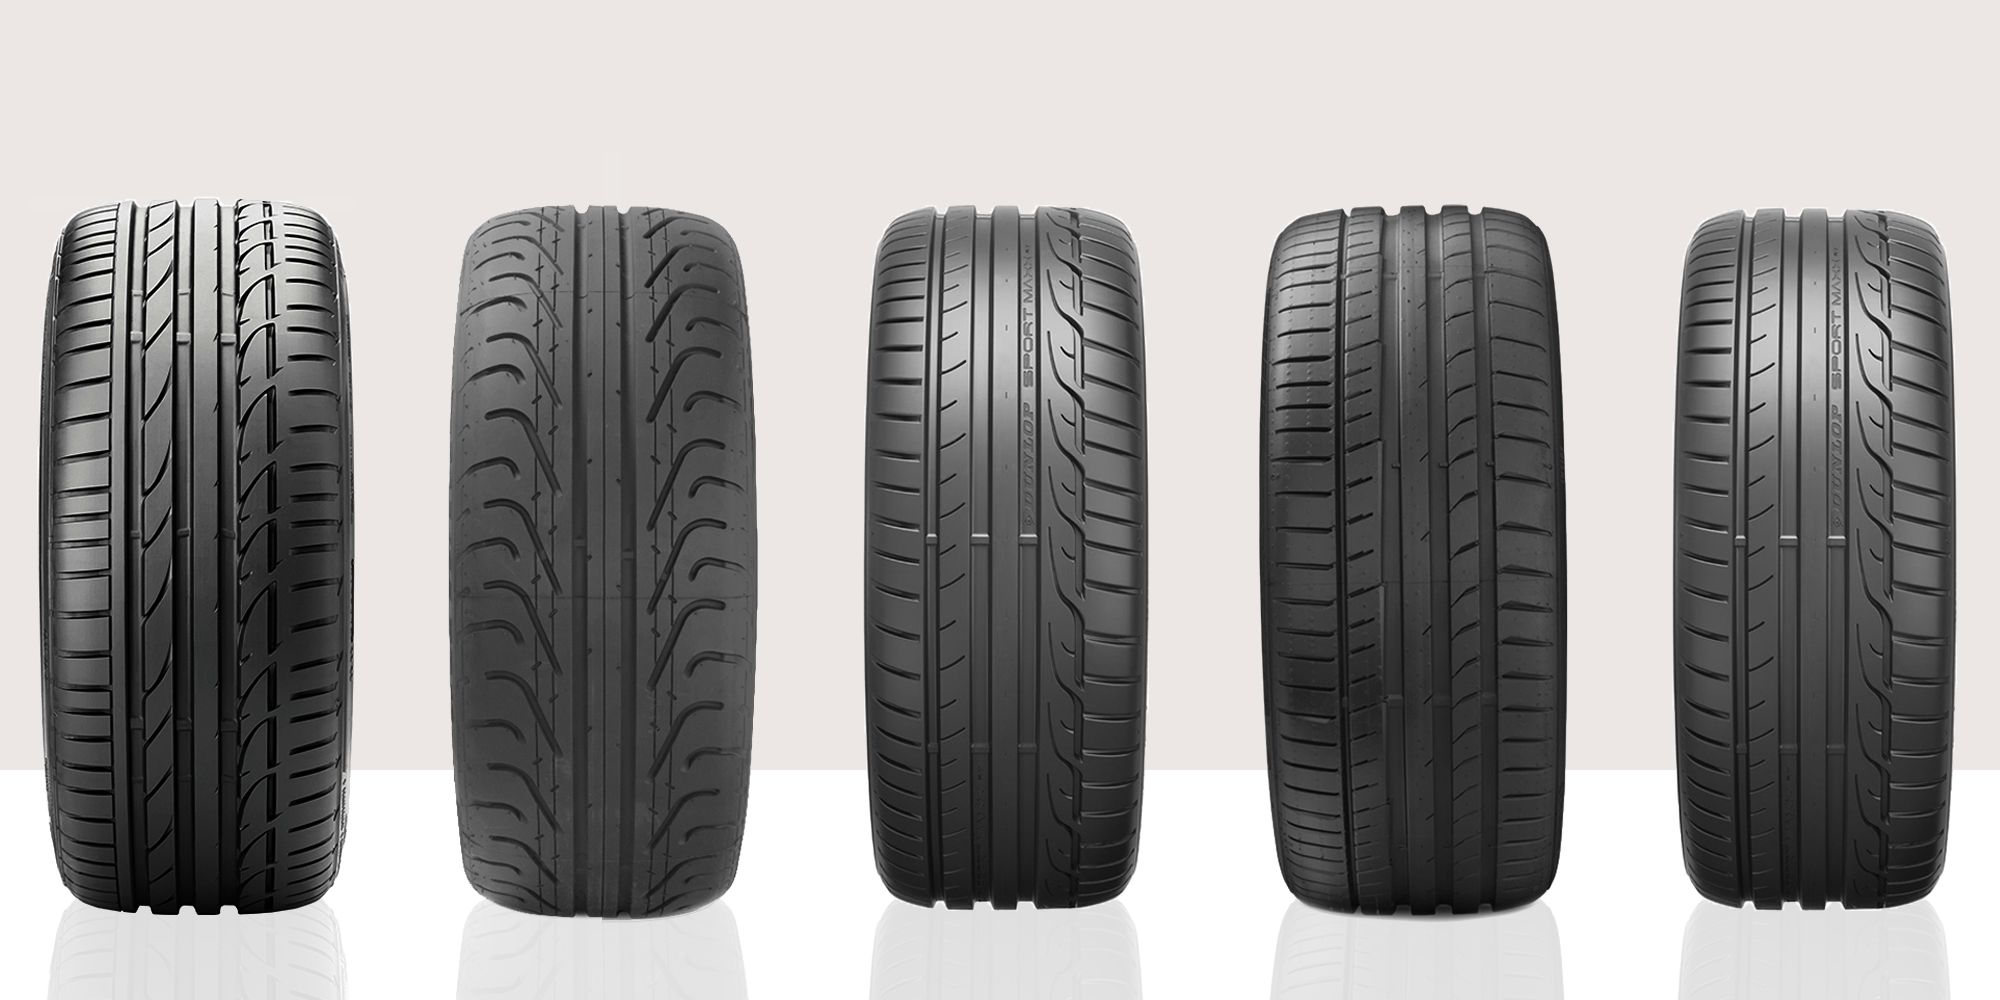 6 Best Performance Tires for Your Sports Car in 2018